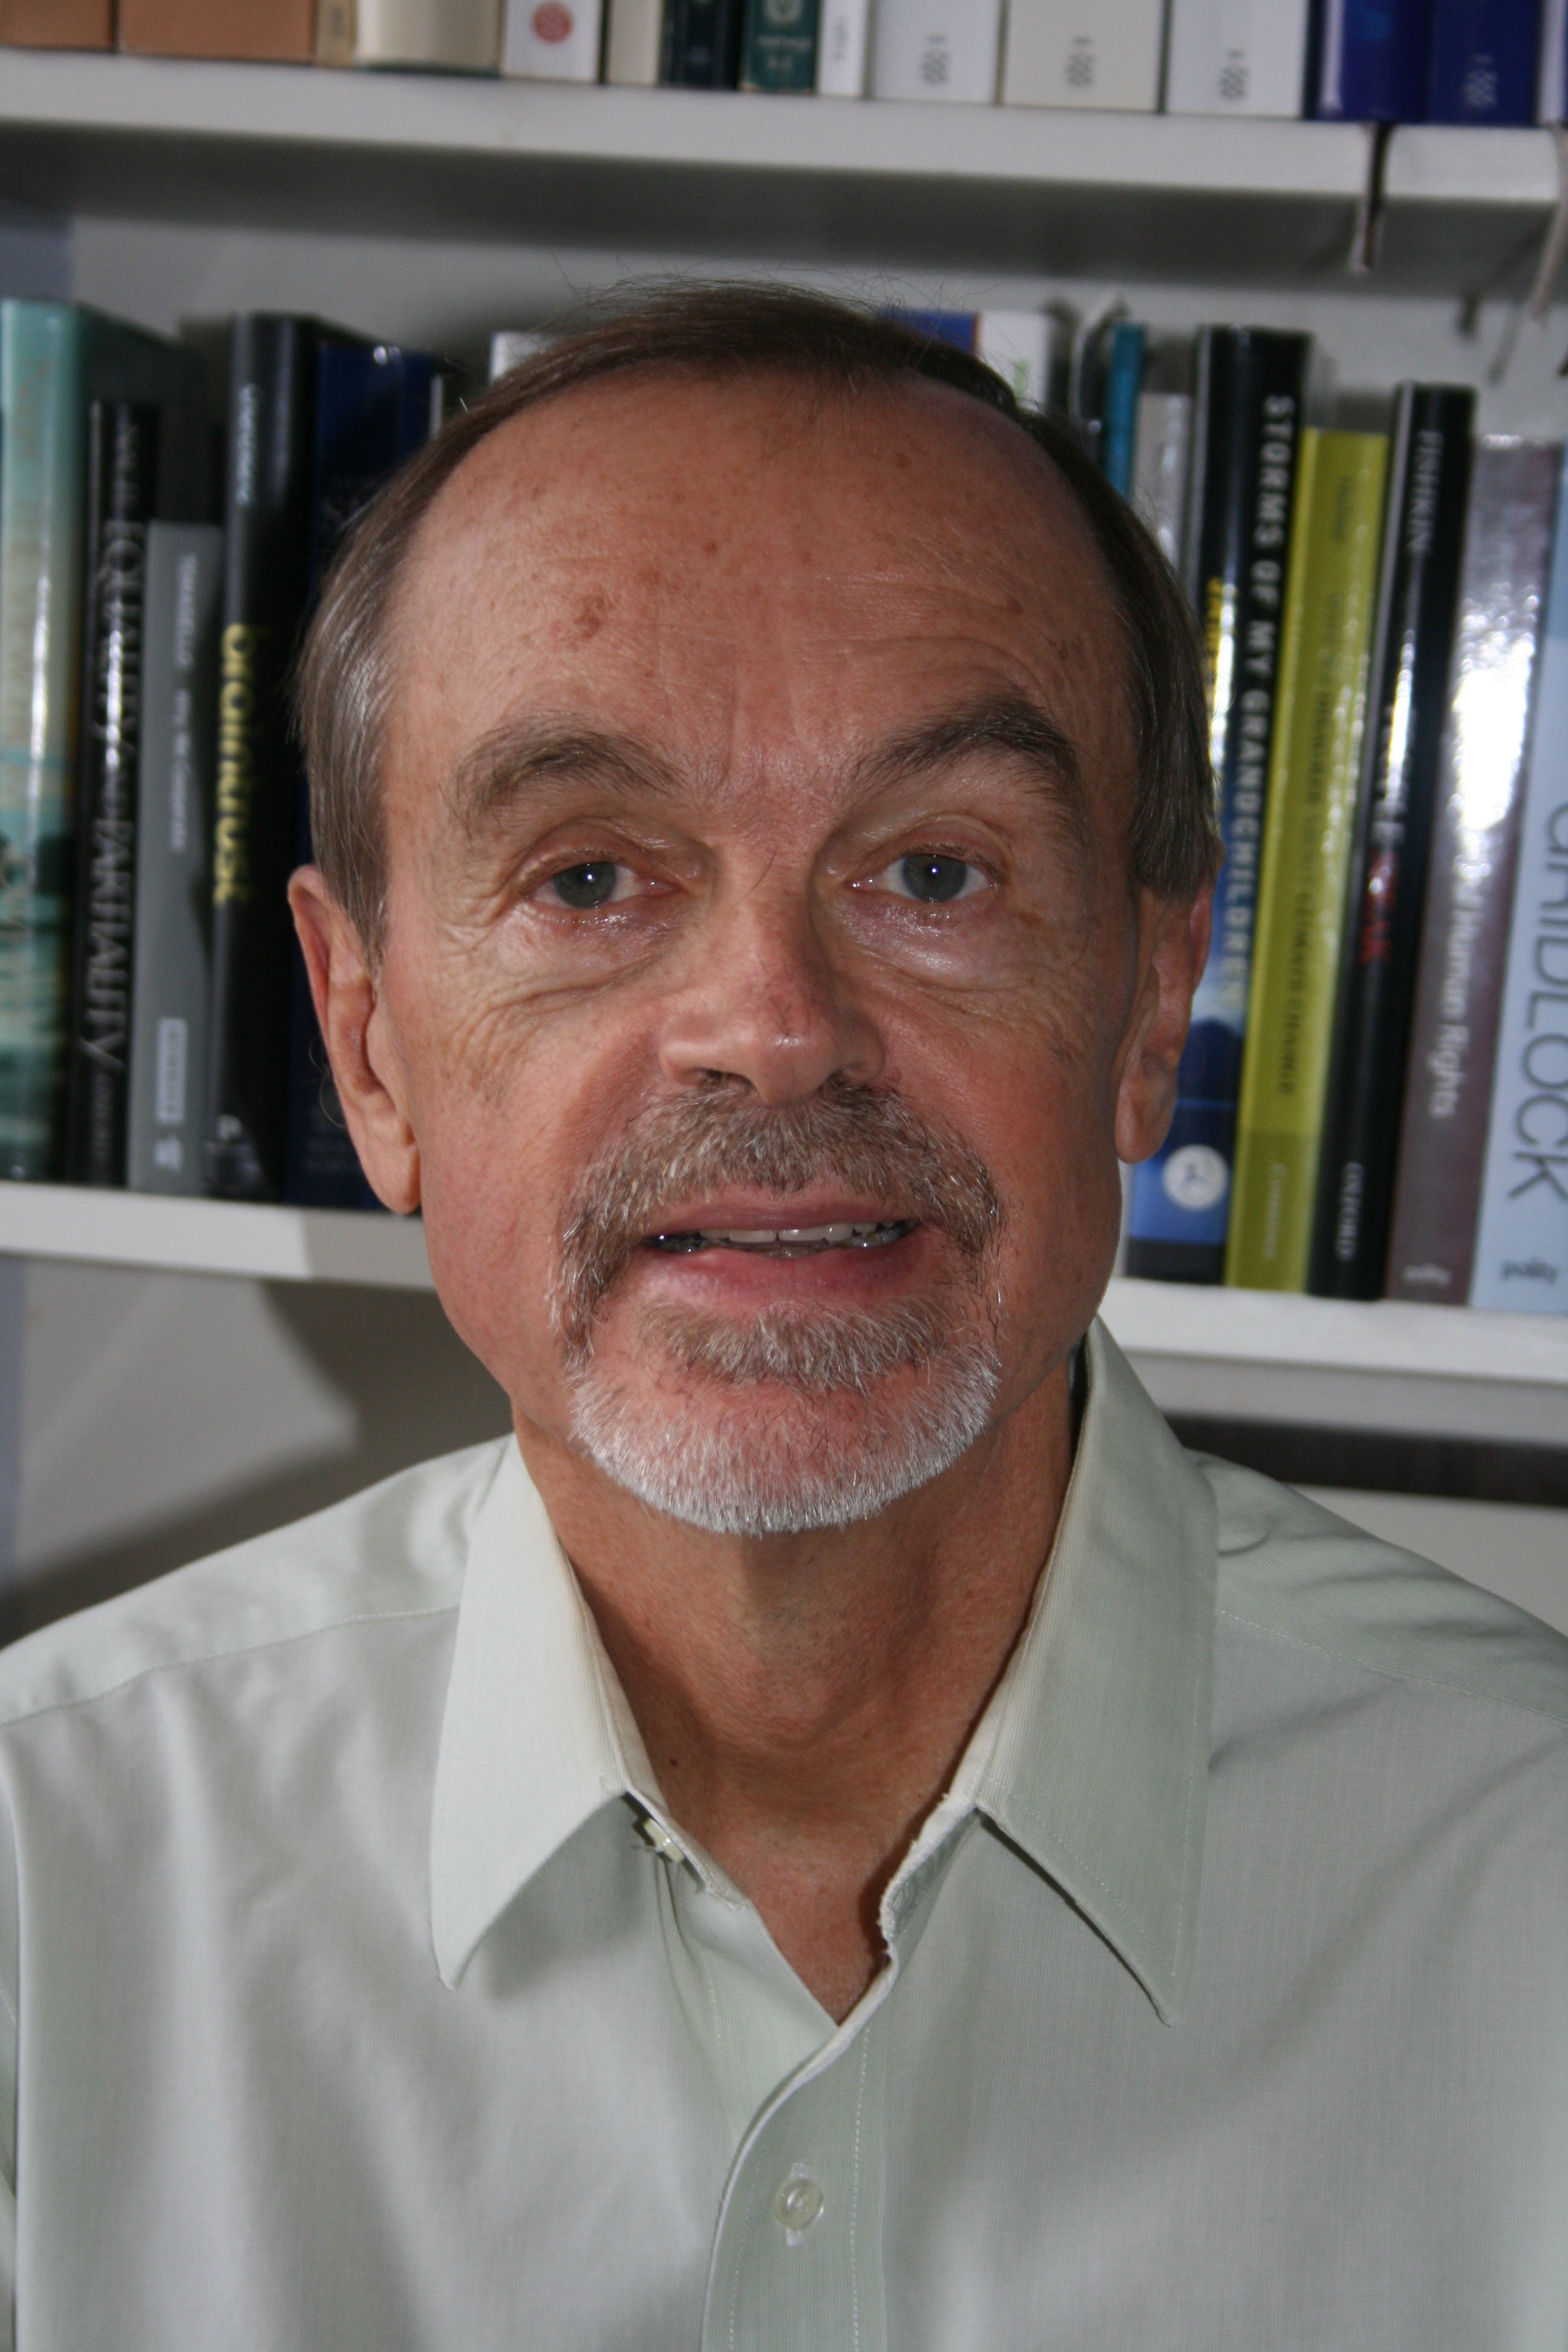 'Life After Faith' author Philip Kitcher. Photo by Patricia Kitcher.